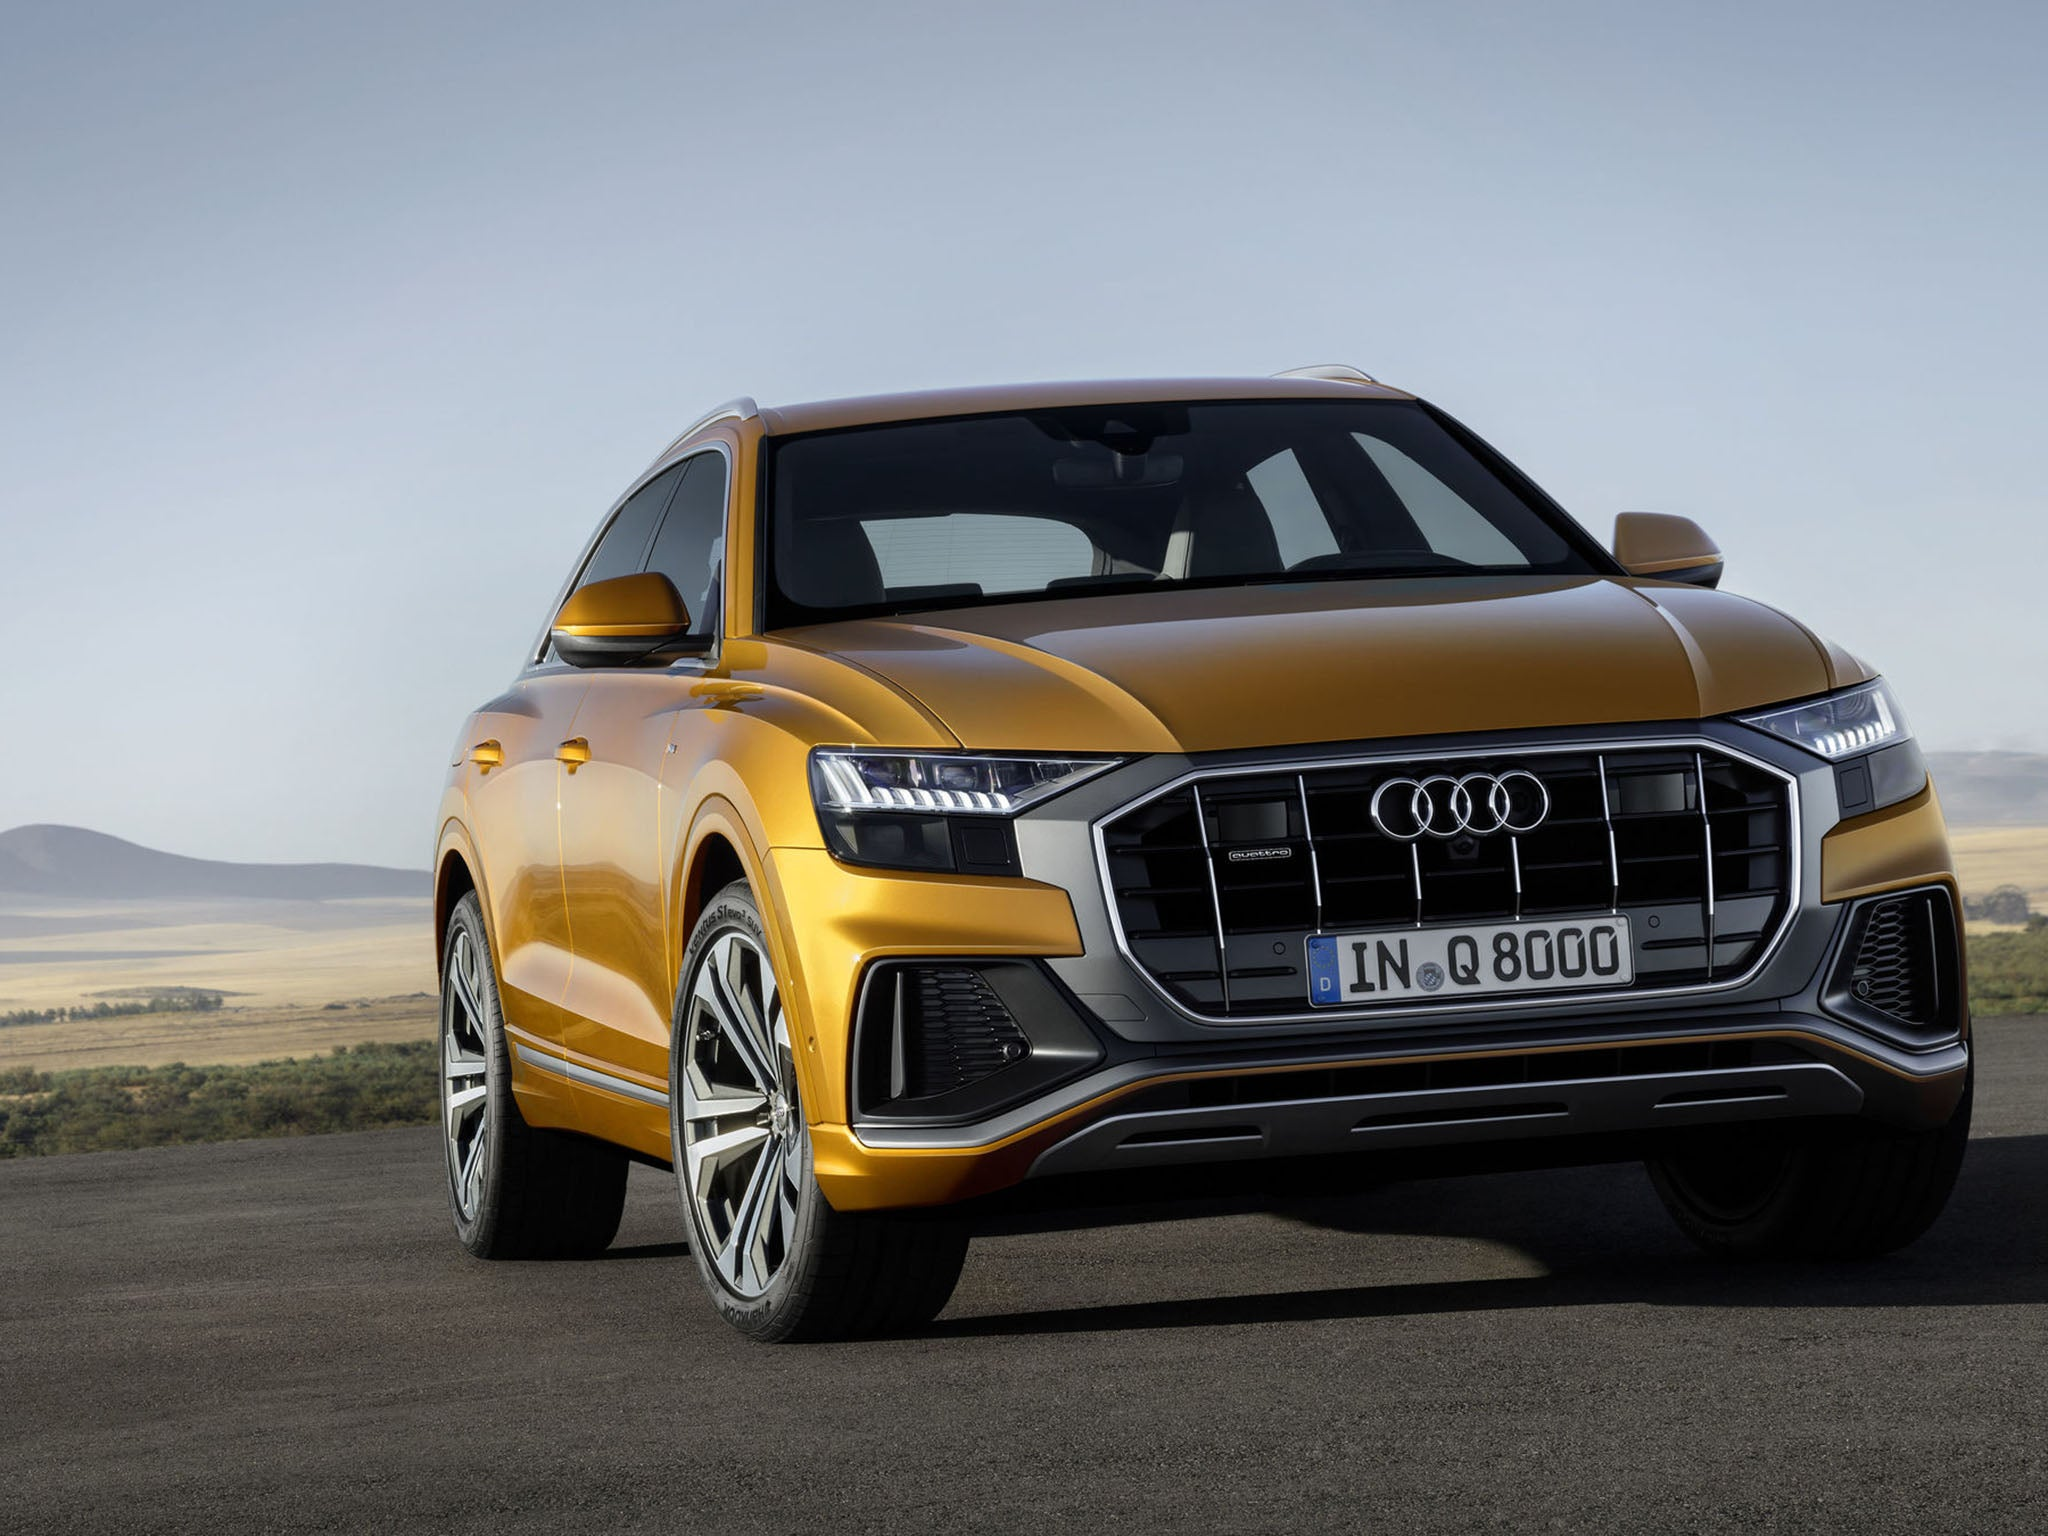 Audi - latest news, breaking stories and comment - The Independent